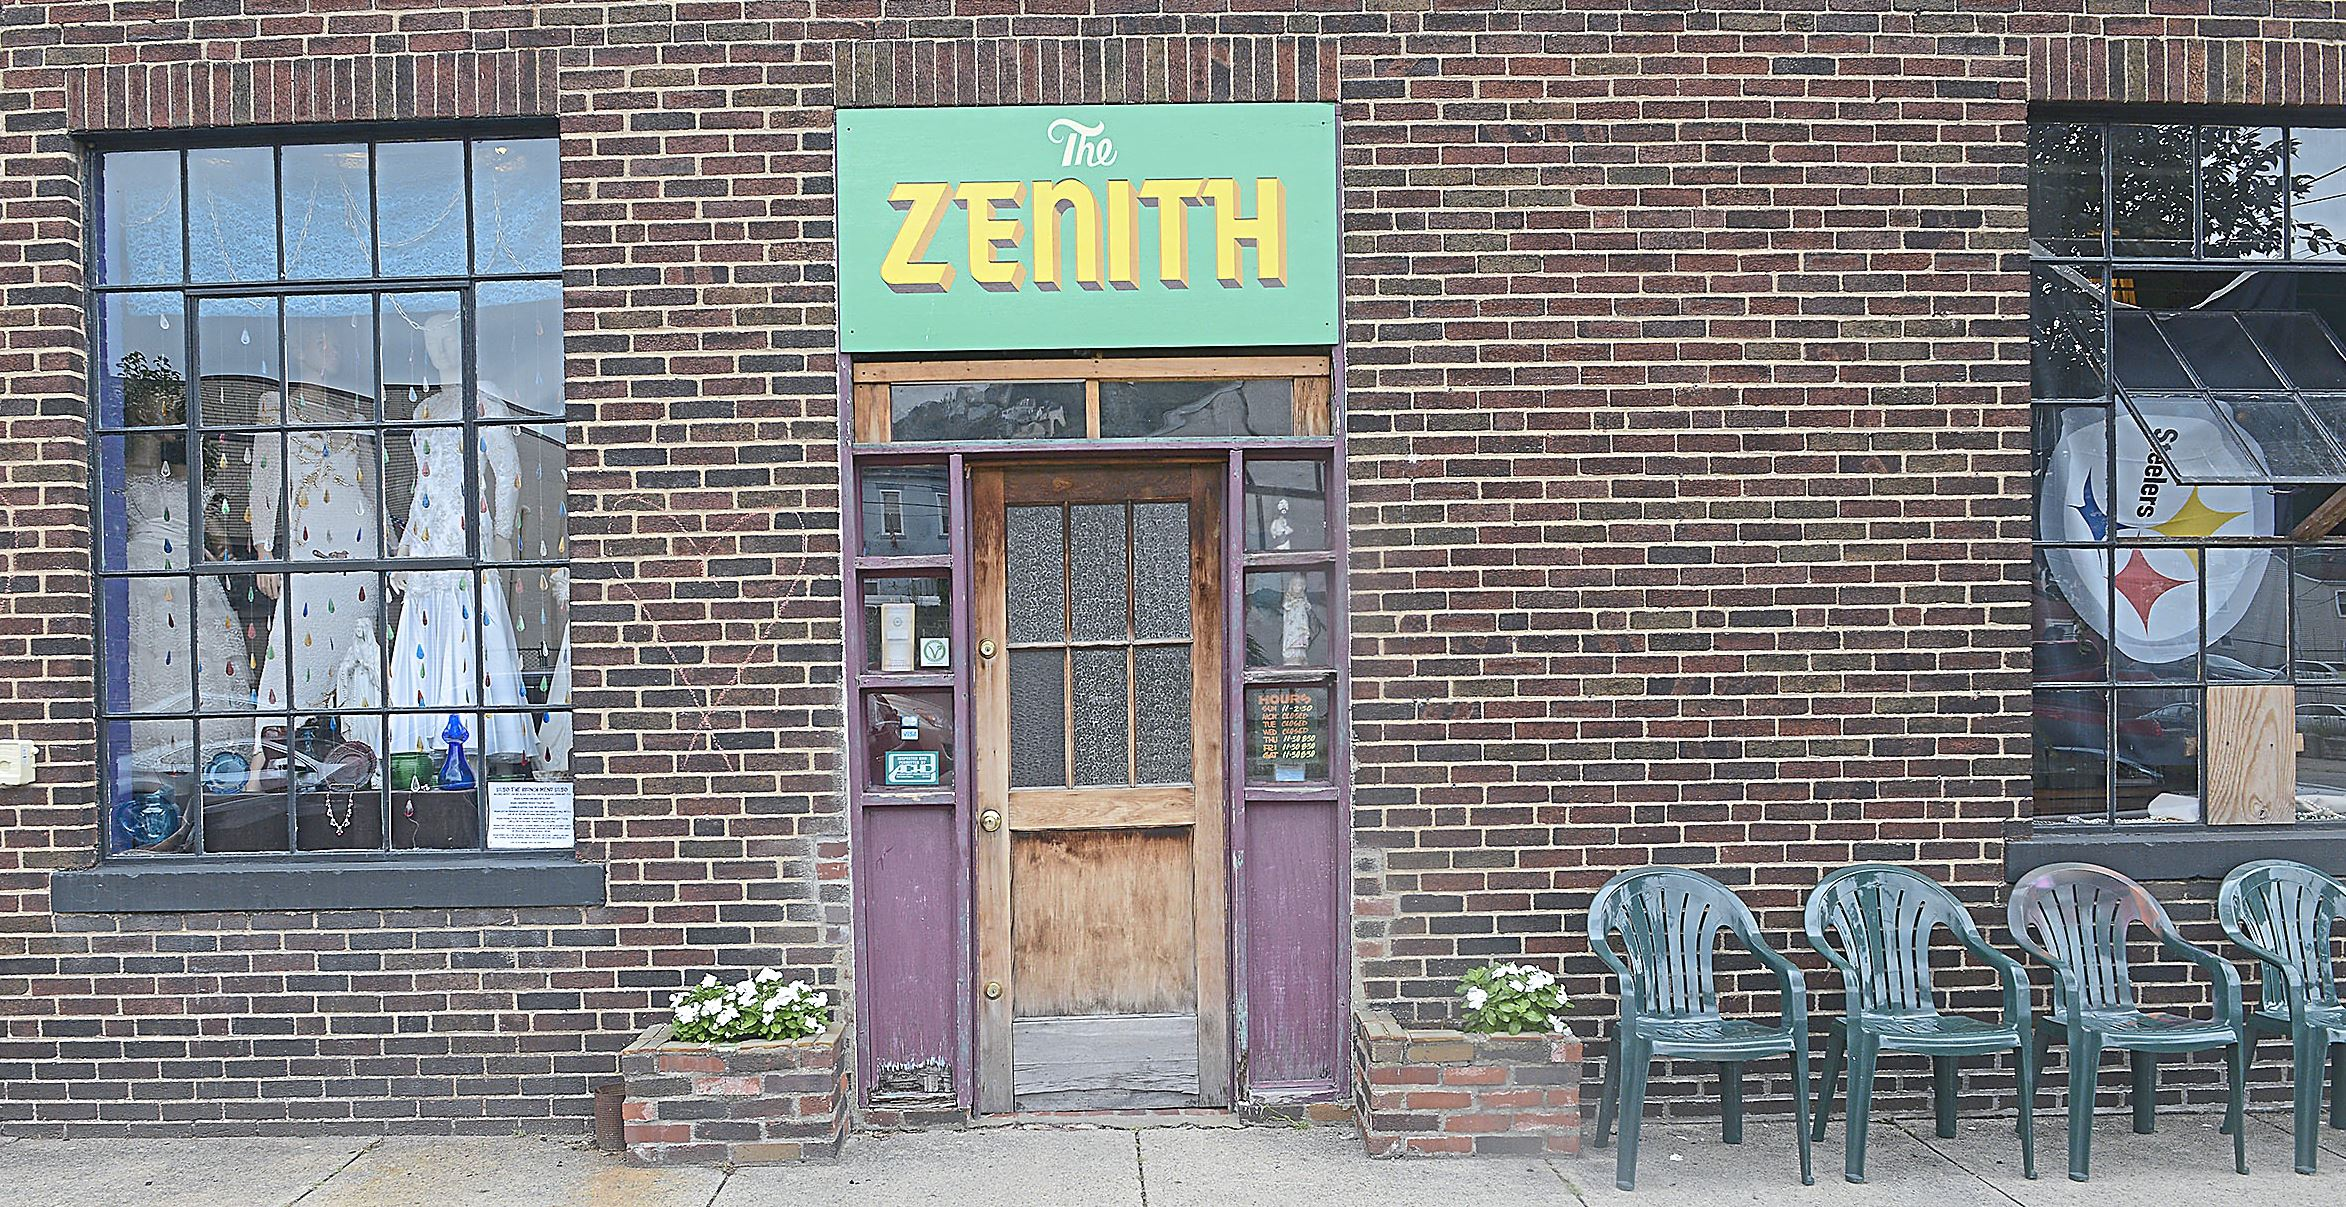 20170723lrfoodzenith01 The Zenith, part restaurant and part antique shop, located on the South Side at the corner of Sarah and 26th.